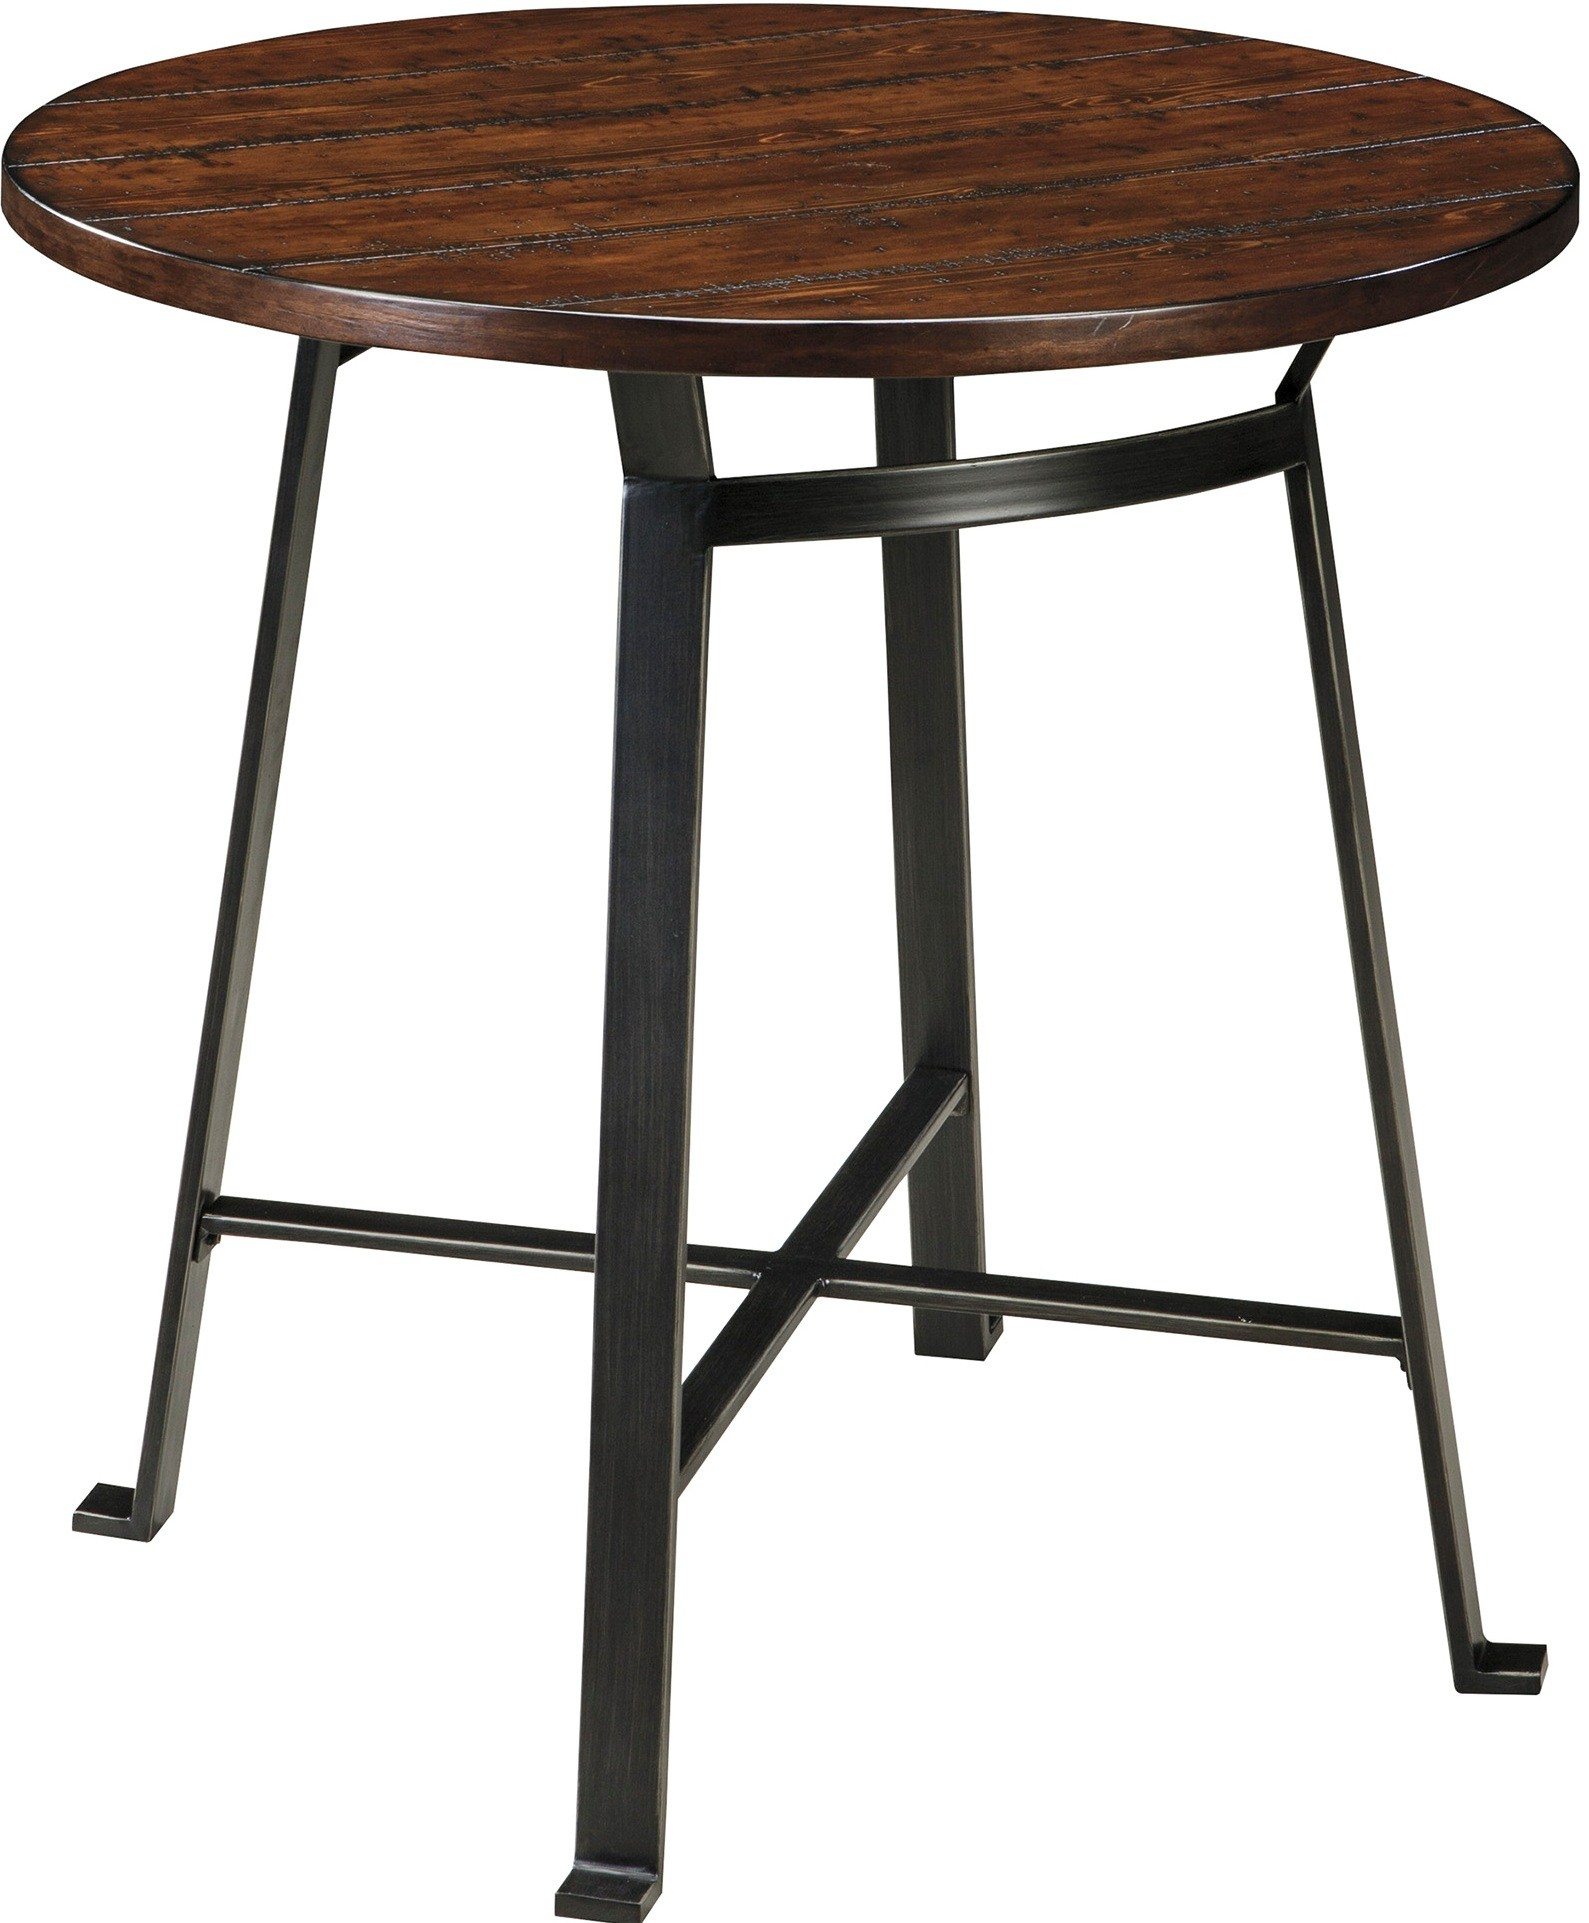 Challiman round dining room bar table from ashley d307 12 - Circular dining room tables ...